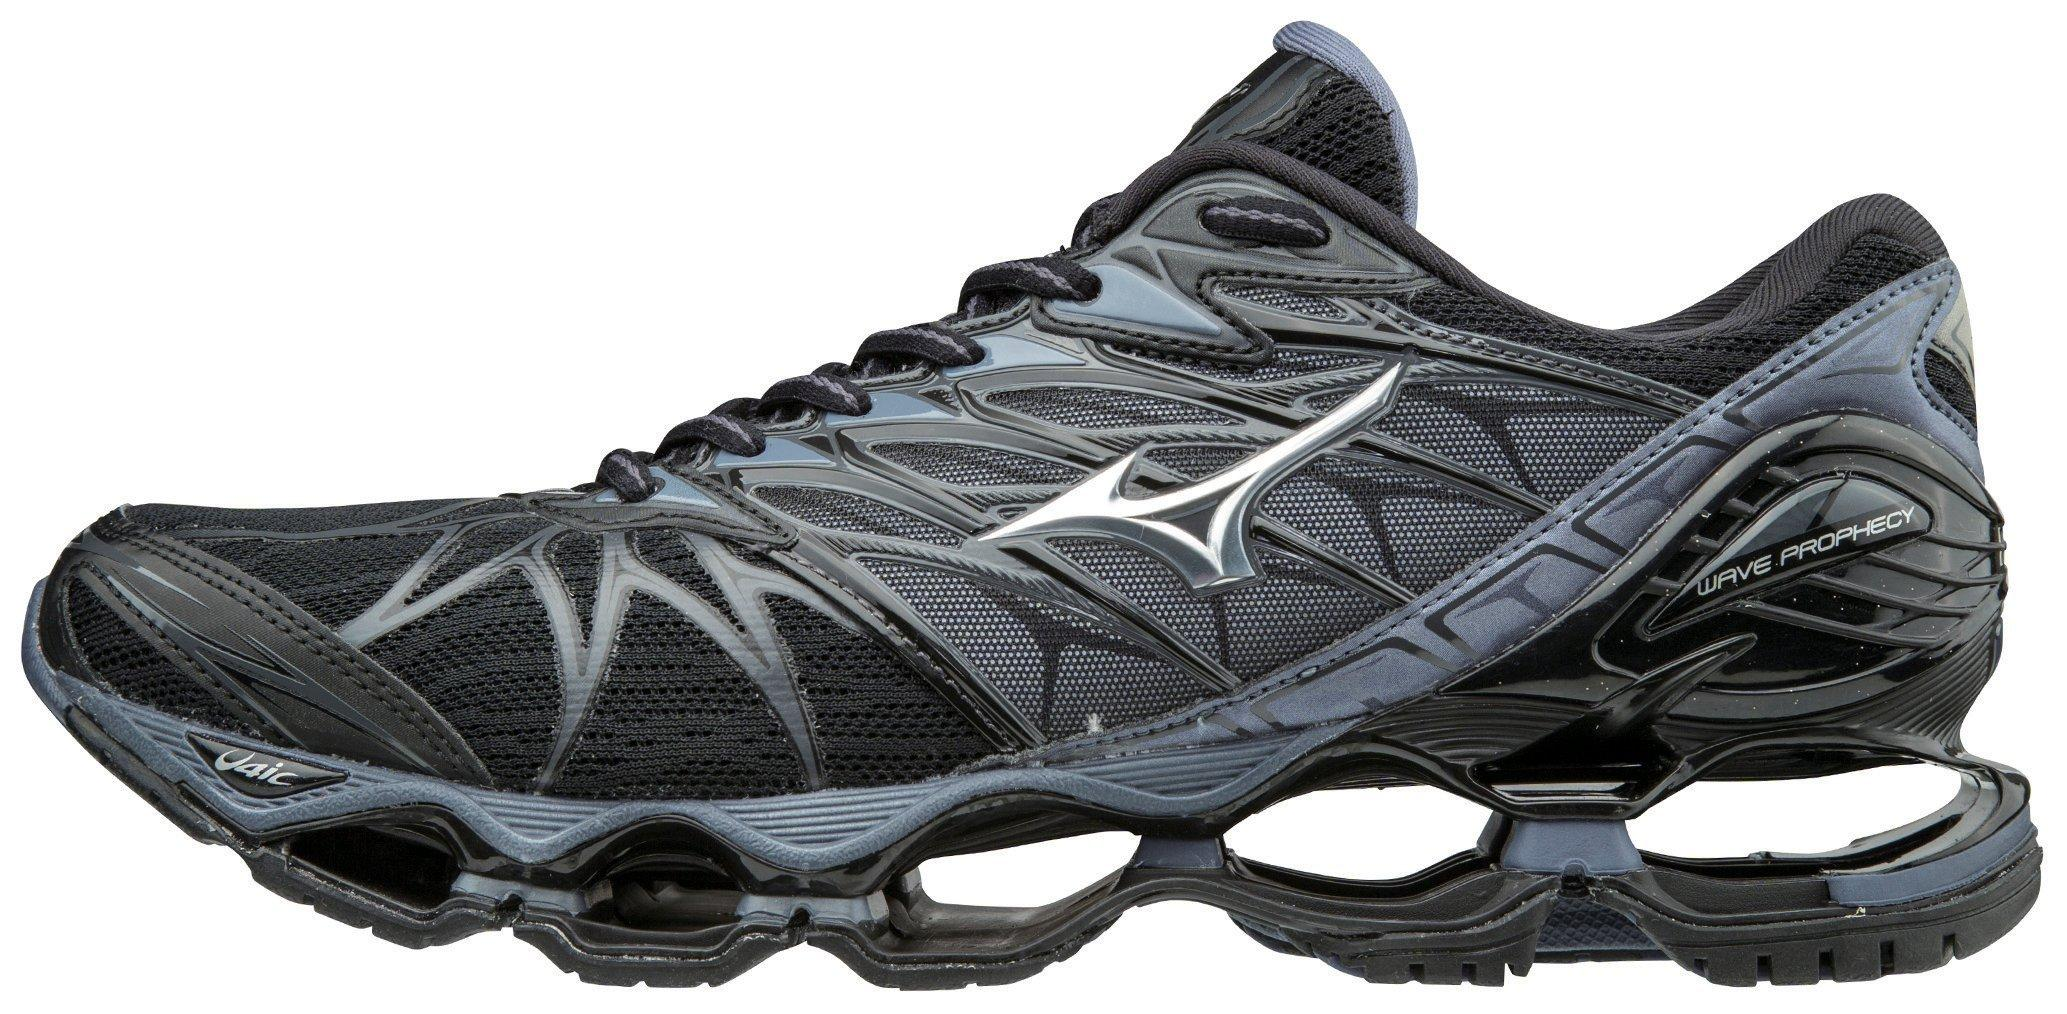 mizuno wave prophecy 7 men's running shoes